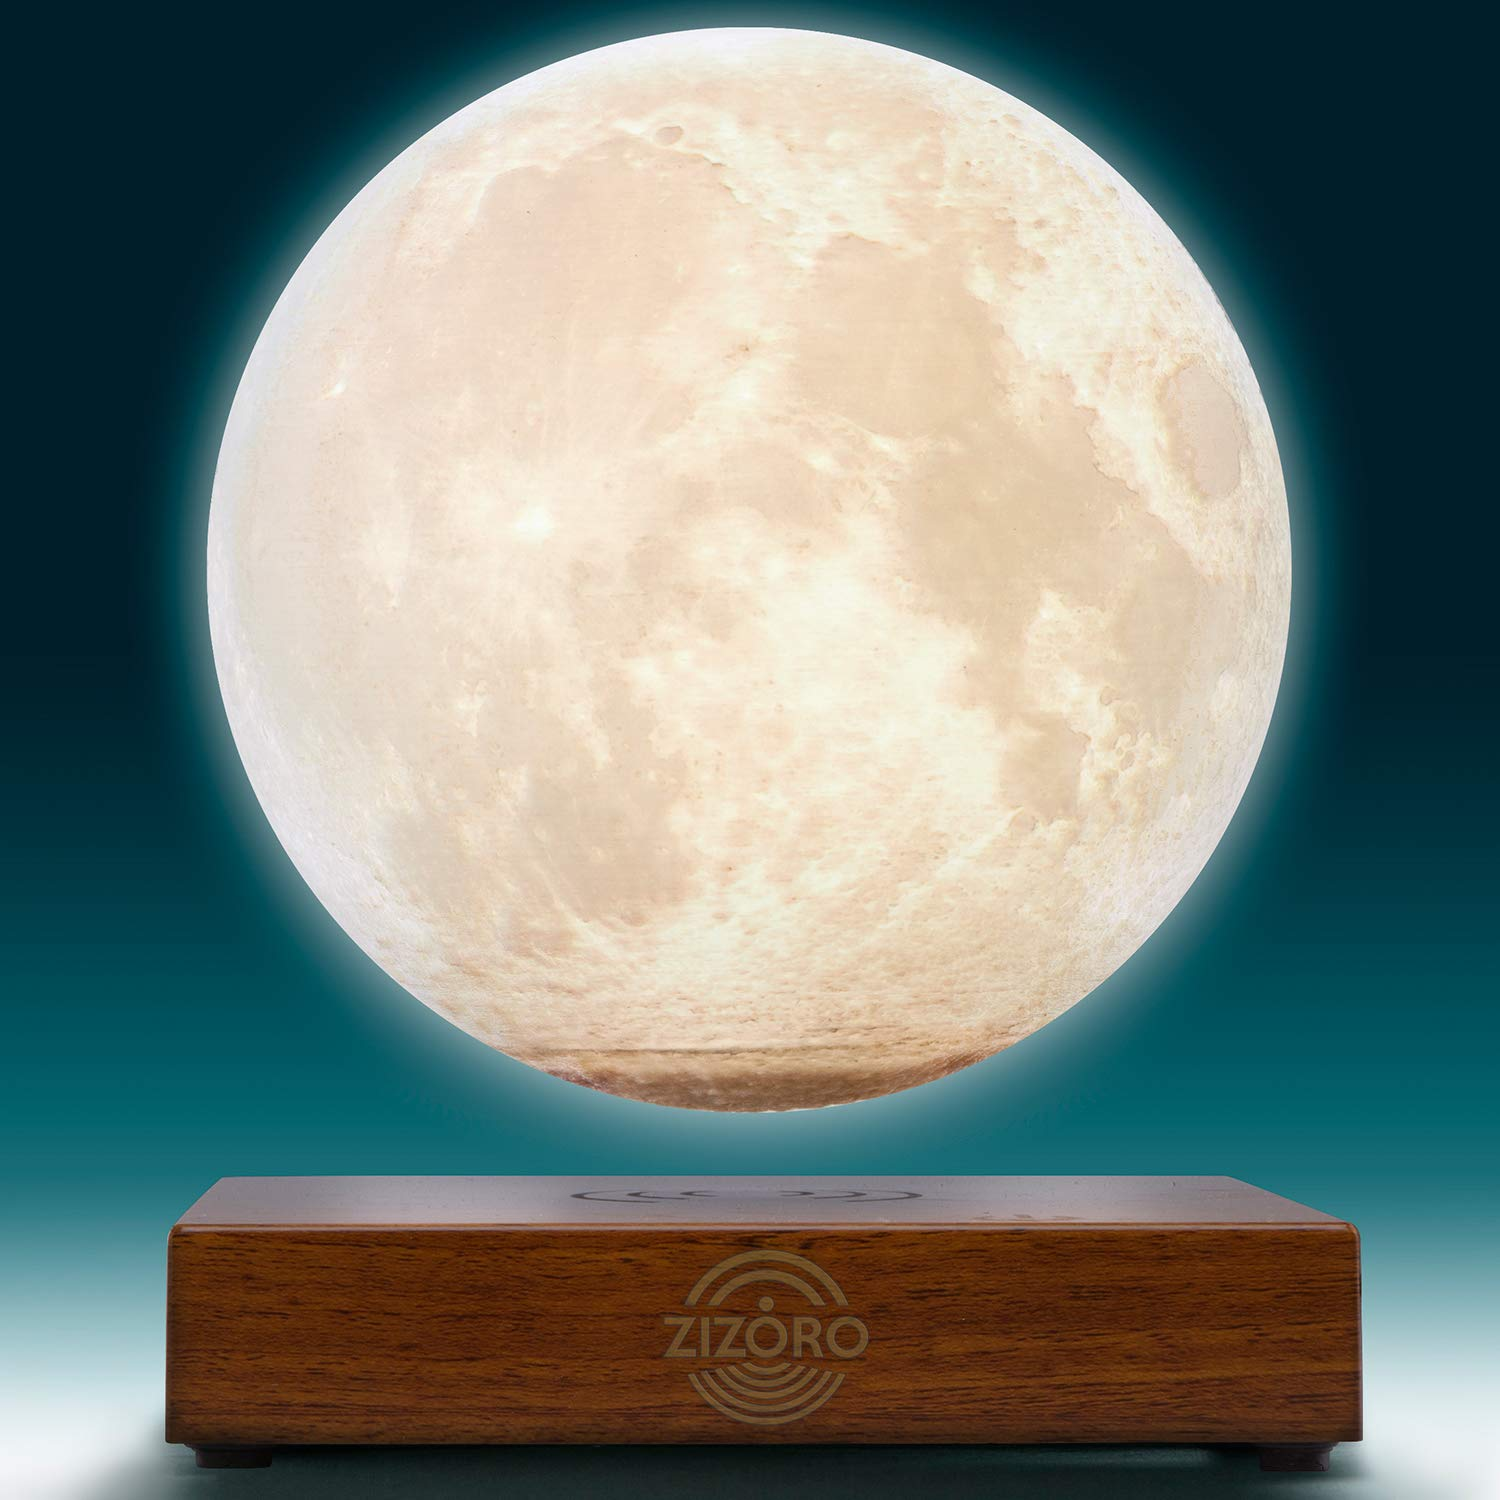 Levitating Moon Lamp - 3D Printing Magnetic Levitation Floating LED Touch Globe Lamp - Best as Cool Room Decor Night Lights and a Wonderful Gift (Cool & Warm White, 5.9'')